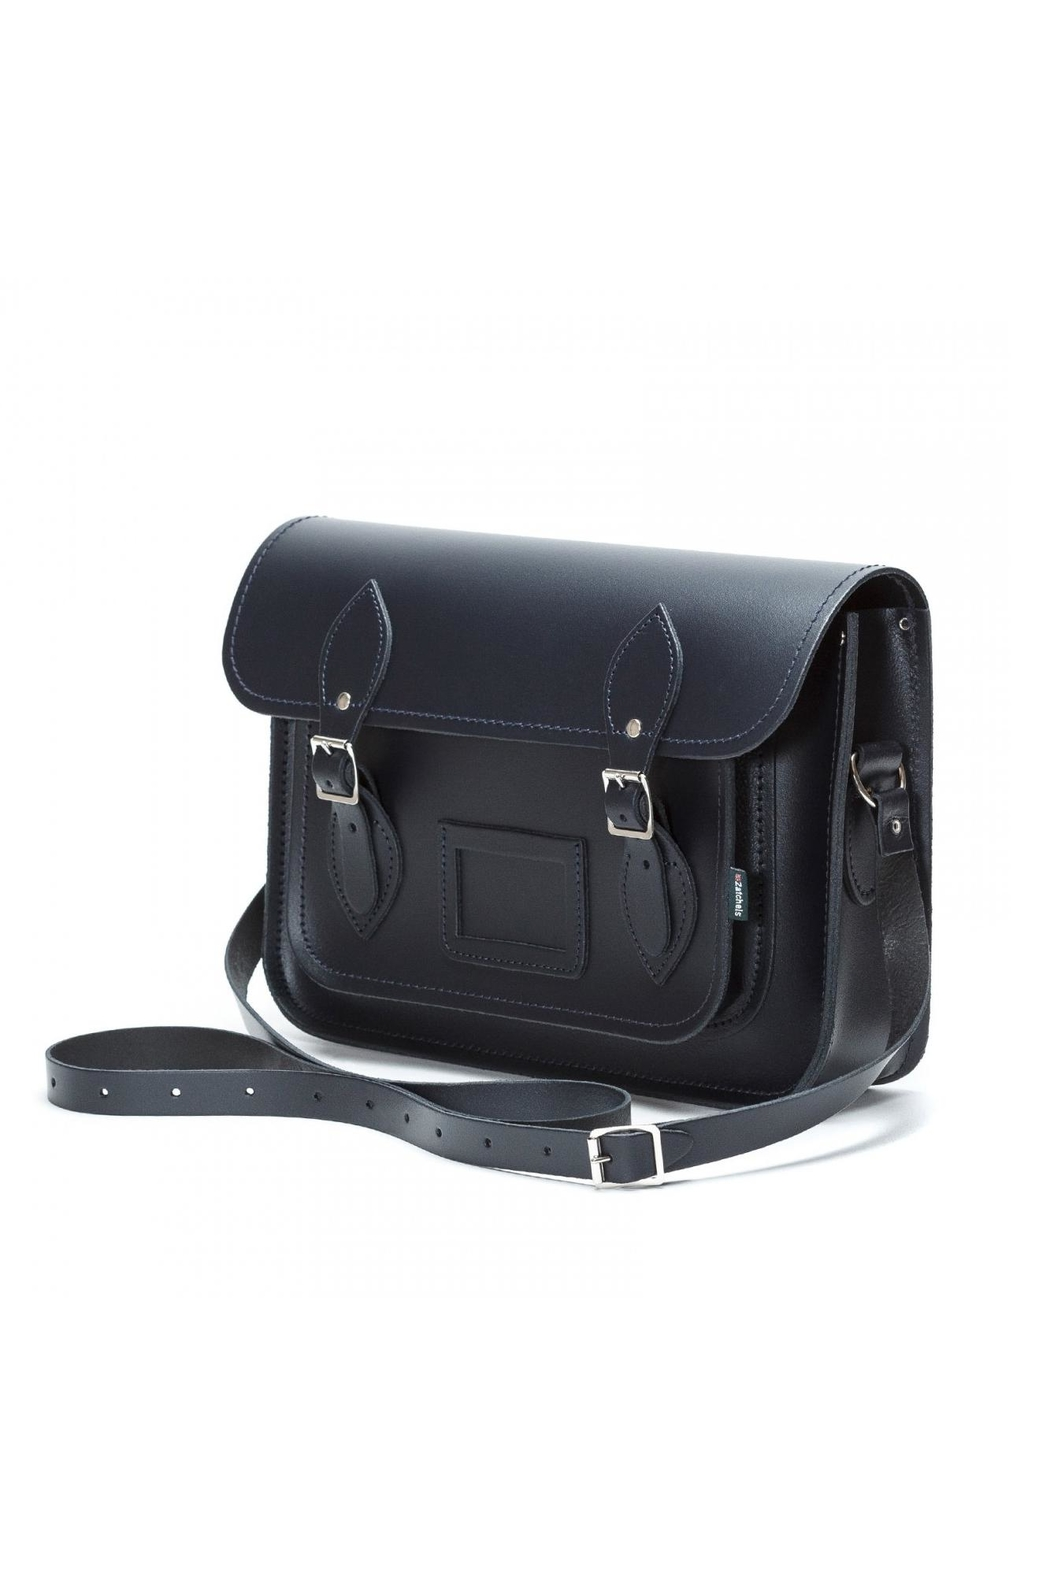 Zatchels Navy Leather Satchel - Front Cropped Image